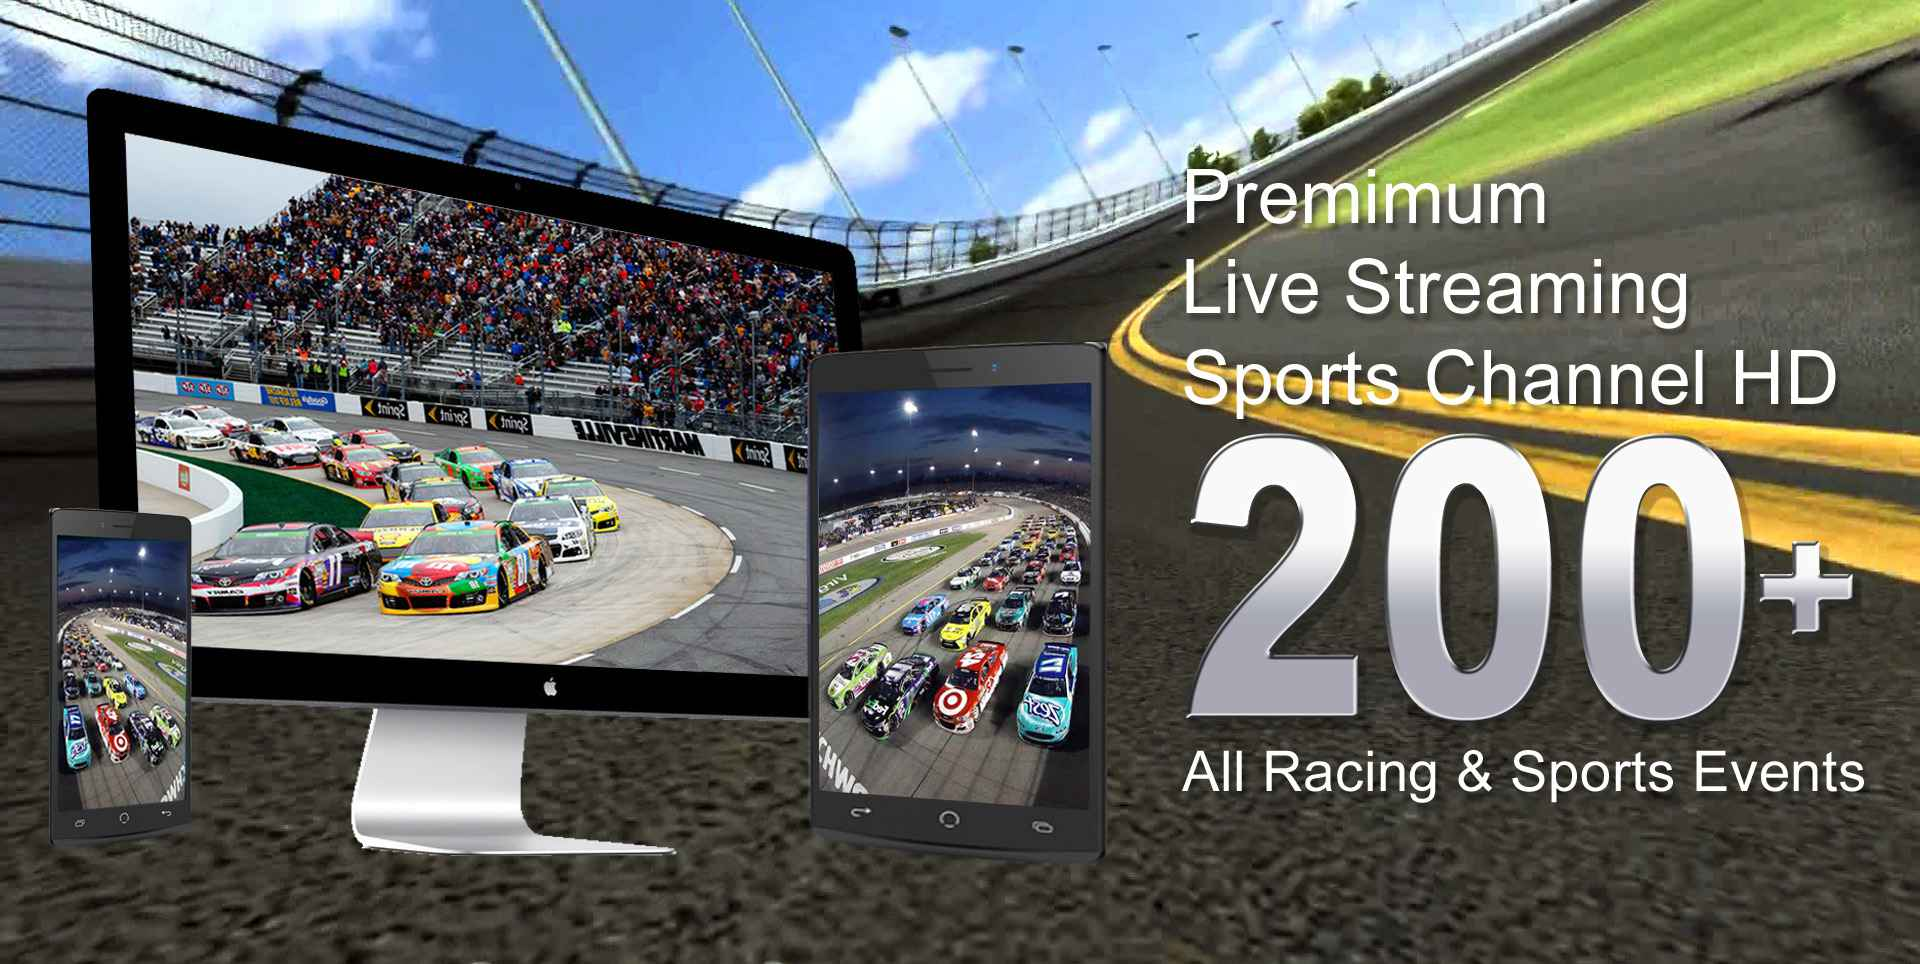 Nascar US Cellular 250 Live Streaming